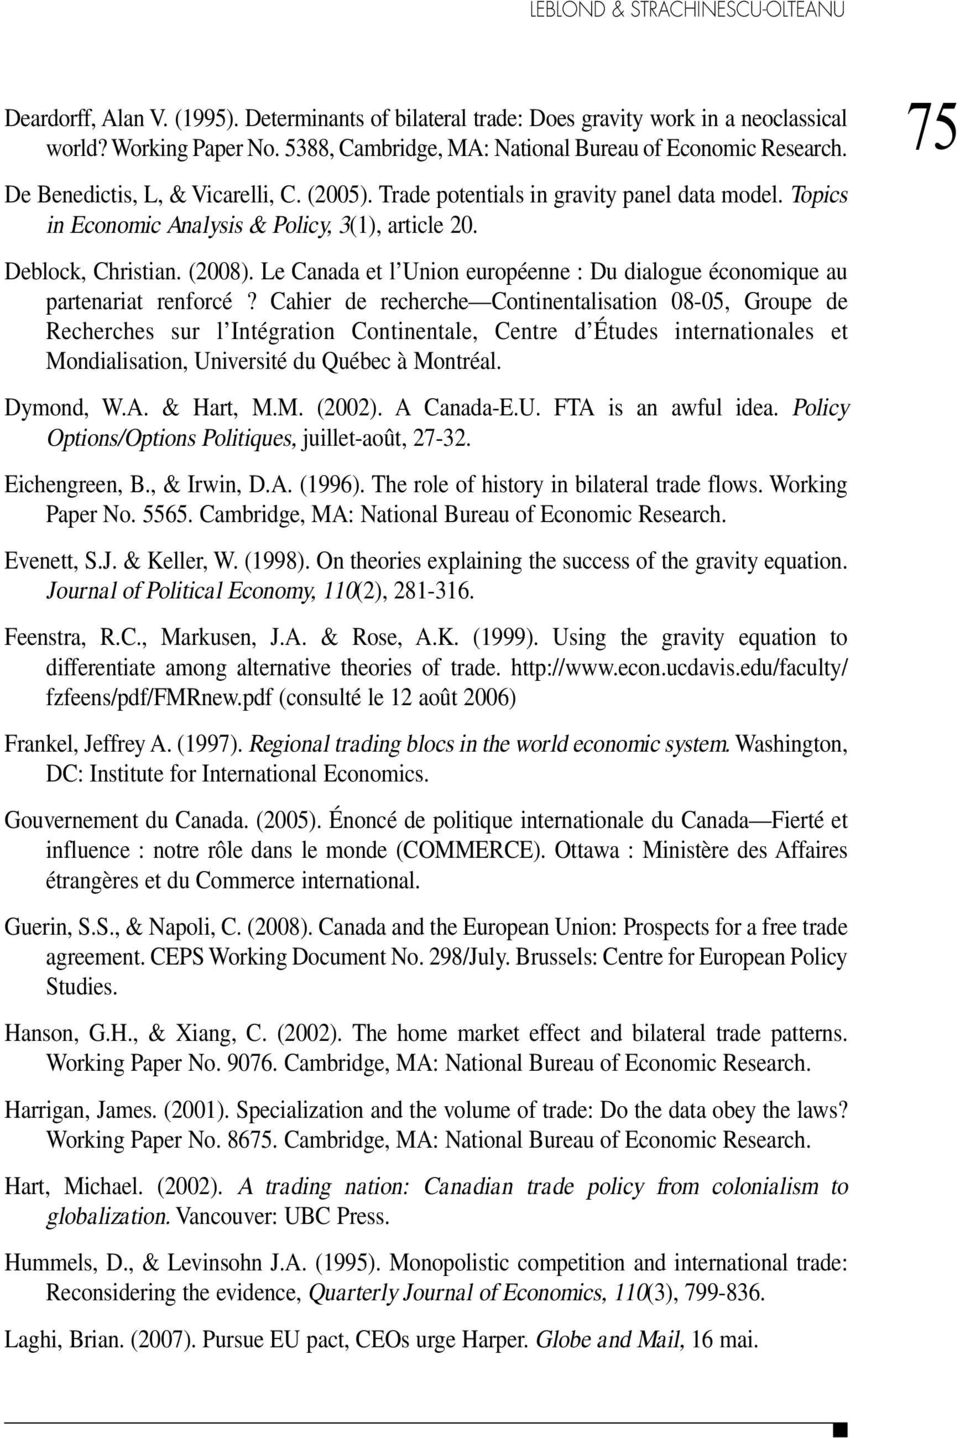 Topics in Economic Analysis & Policy, 3(1), article 20. Deblock, Christian. (2008). Le Canada et l Union européenne : Du dialogue économique au partenariat renforcé?